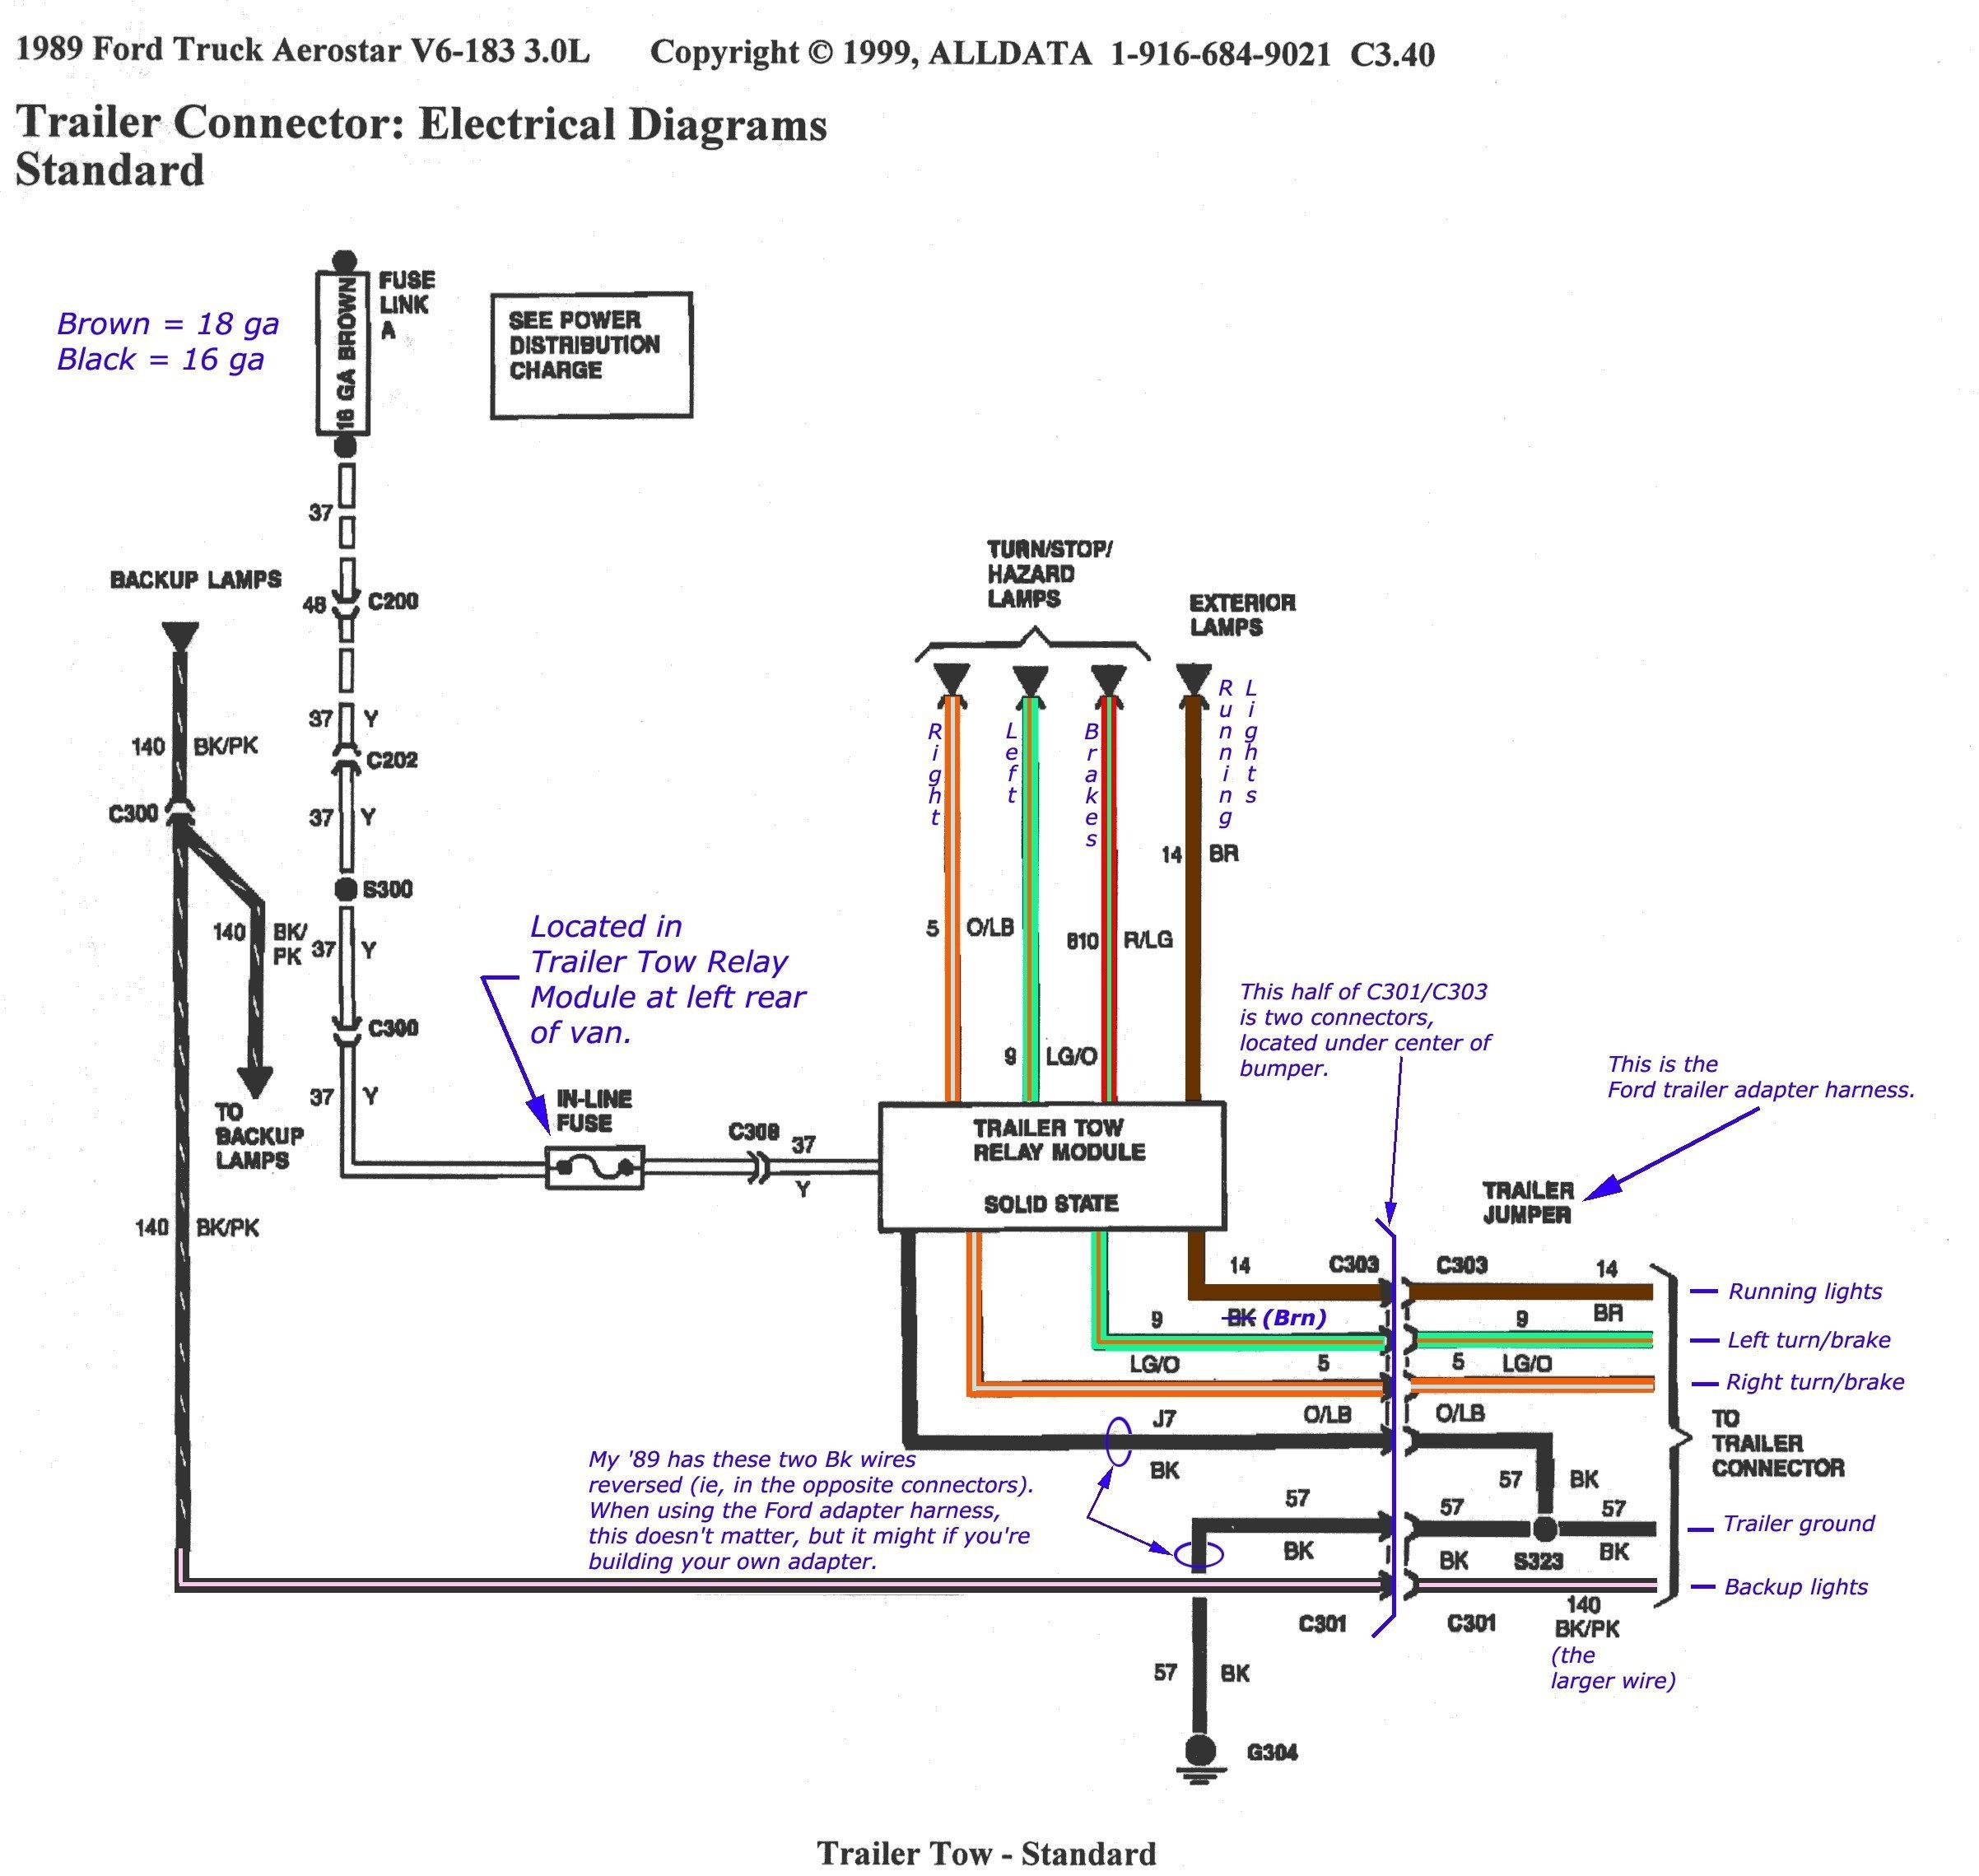 utility trailer wiring diagram Collection-Wiring Diagrams for Utility Trailer Best Utility Trailer Wiring Diagram Best Best Wiring Diagram Od Rv 15-q